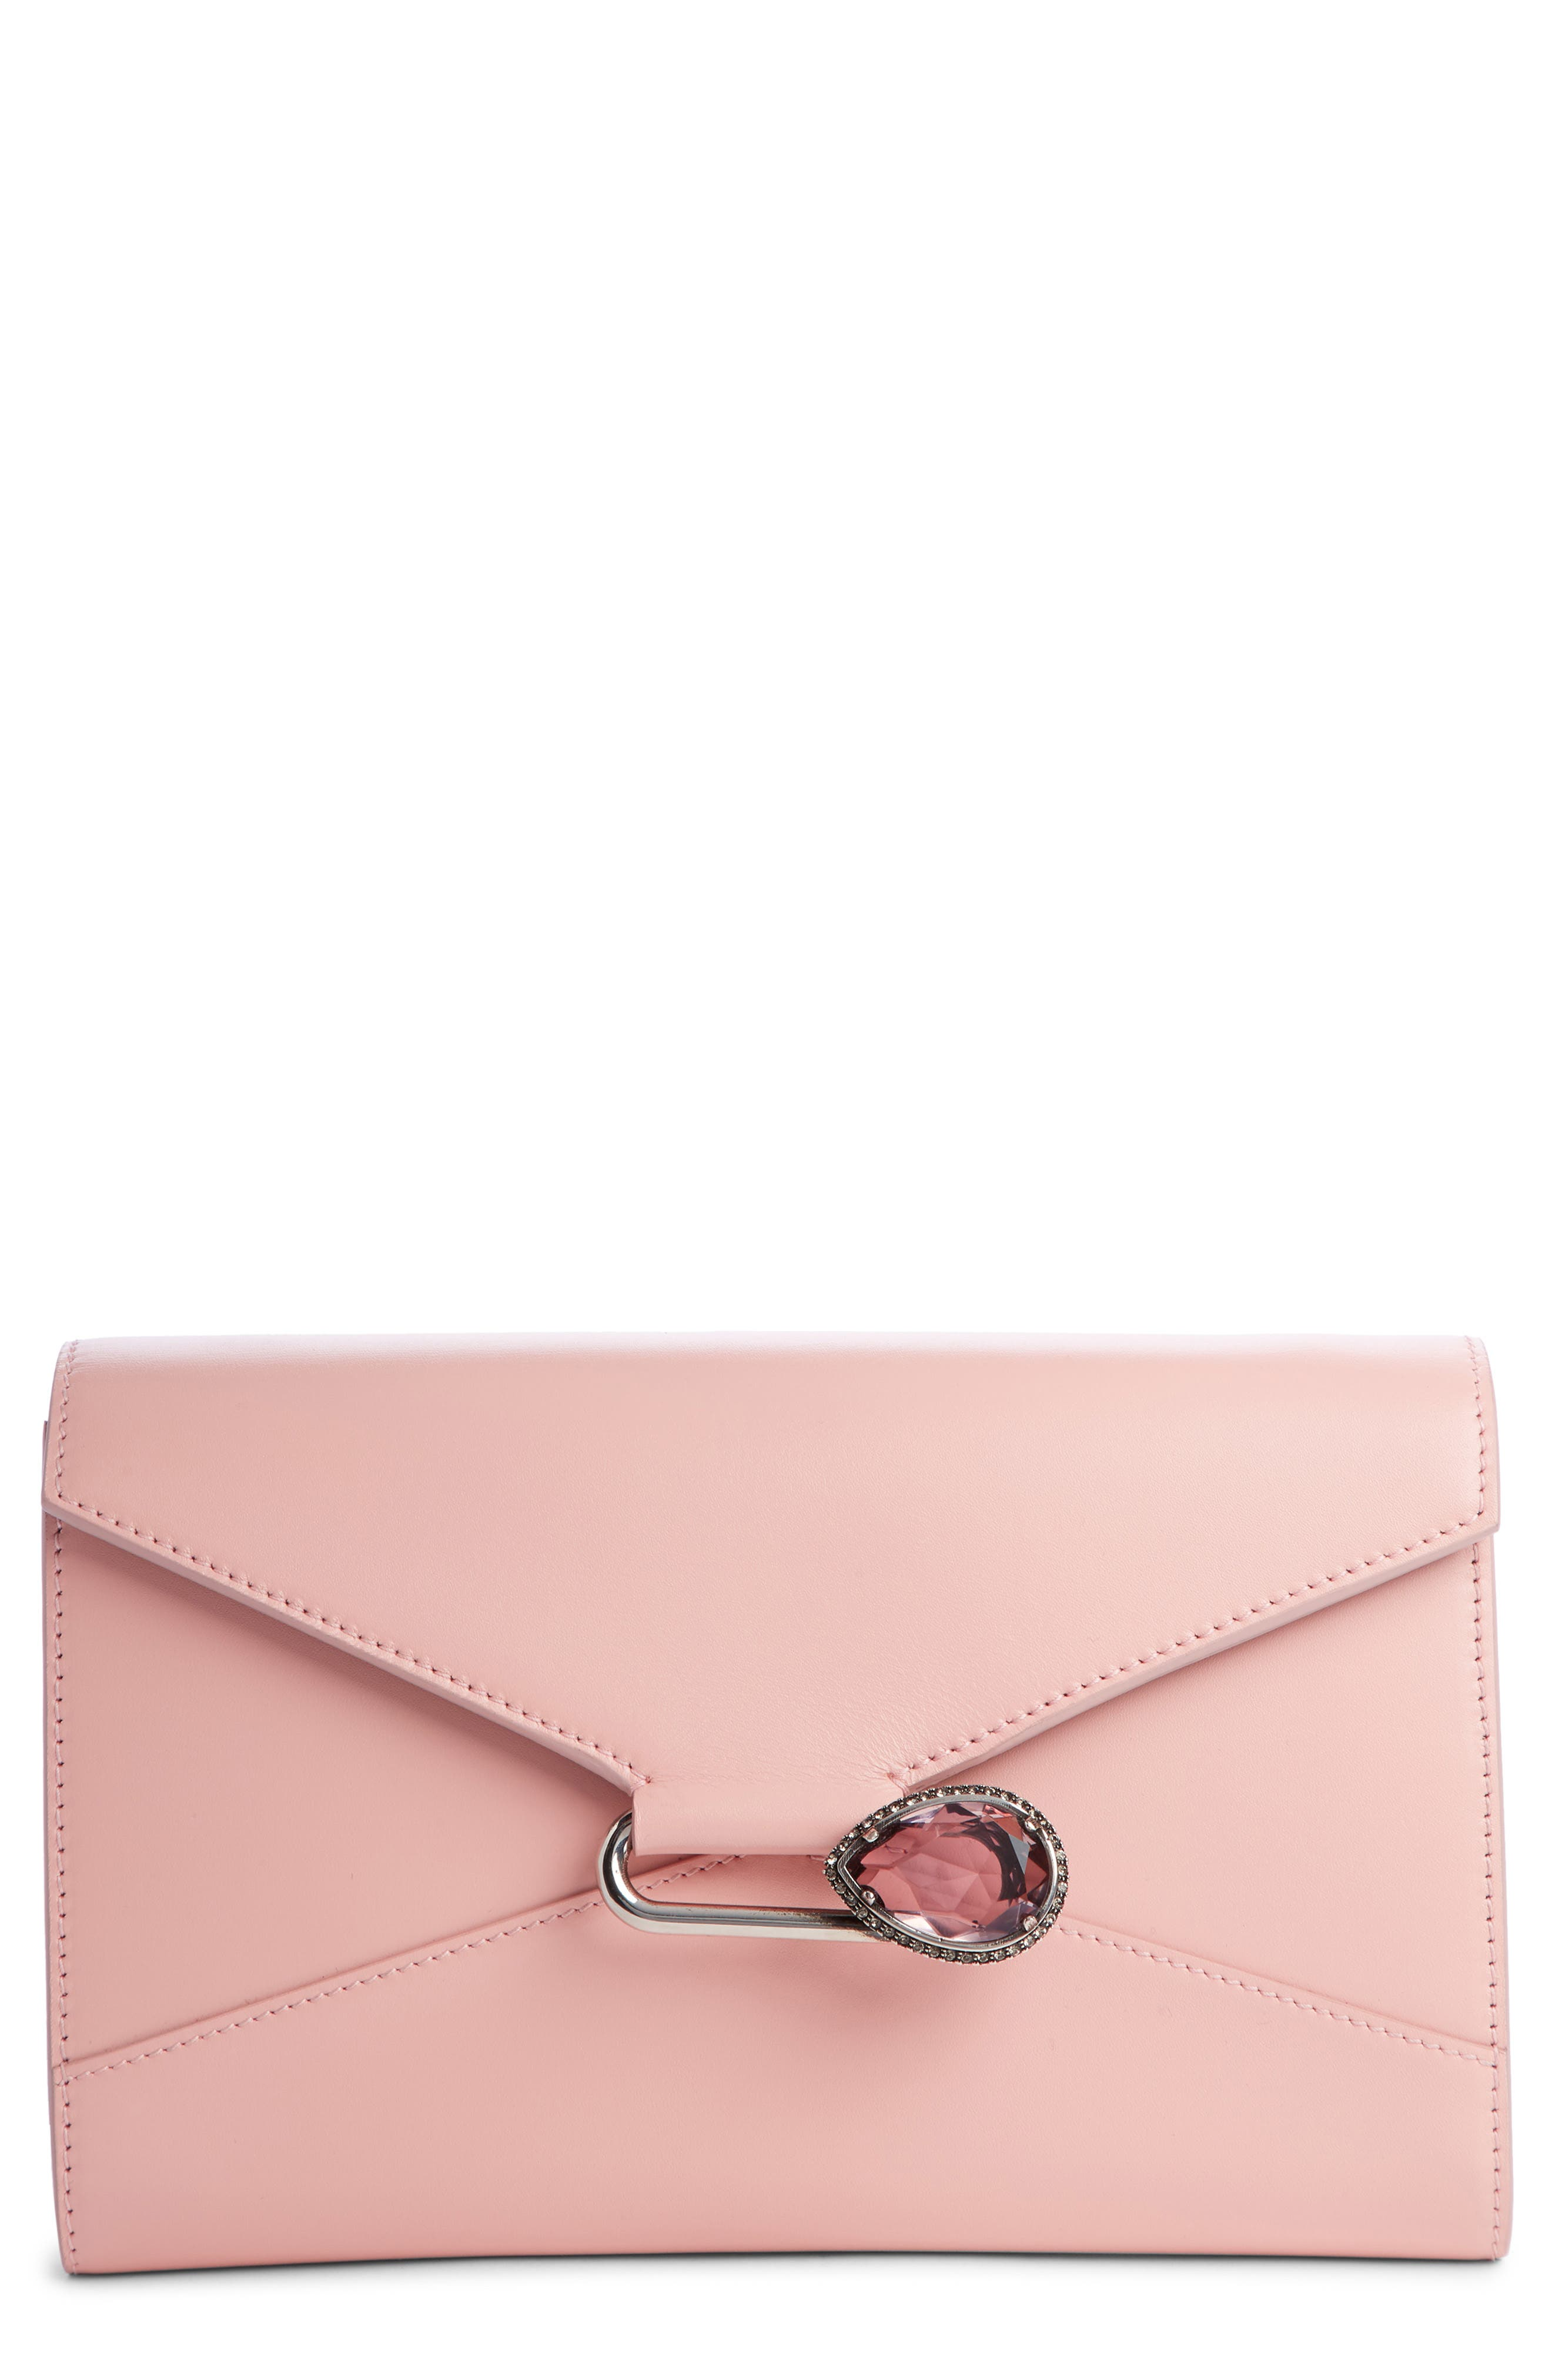 Pin Calfskin Wallet on a Chain, Main, color, ANEMONE